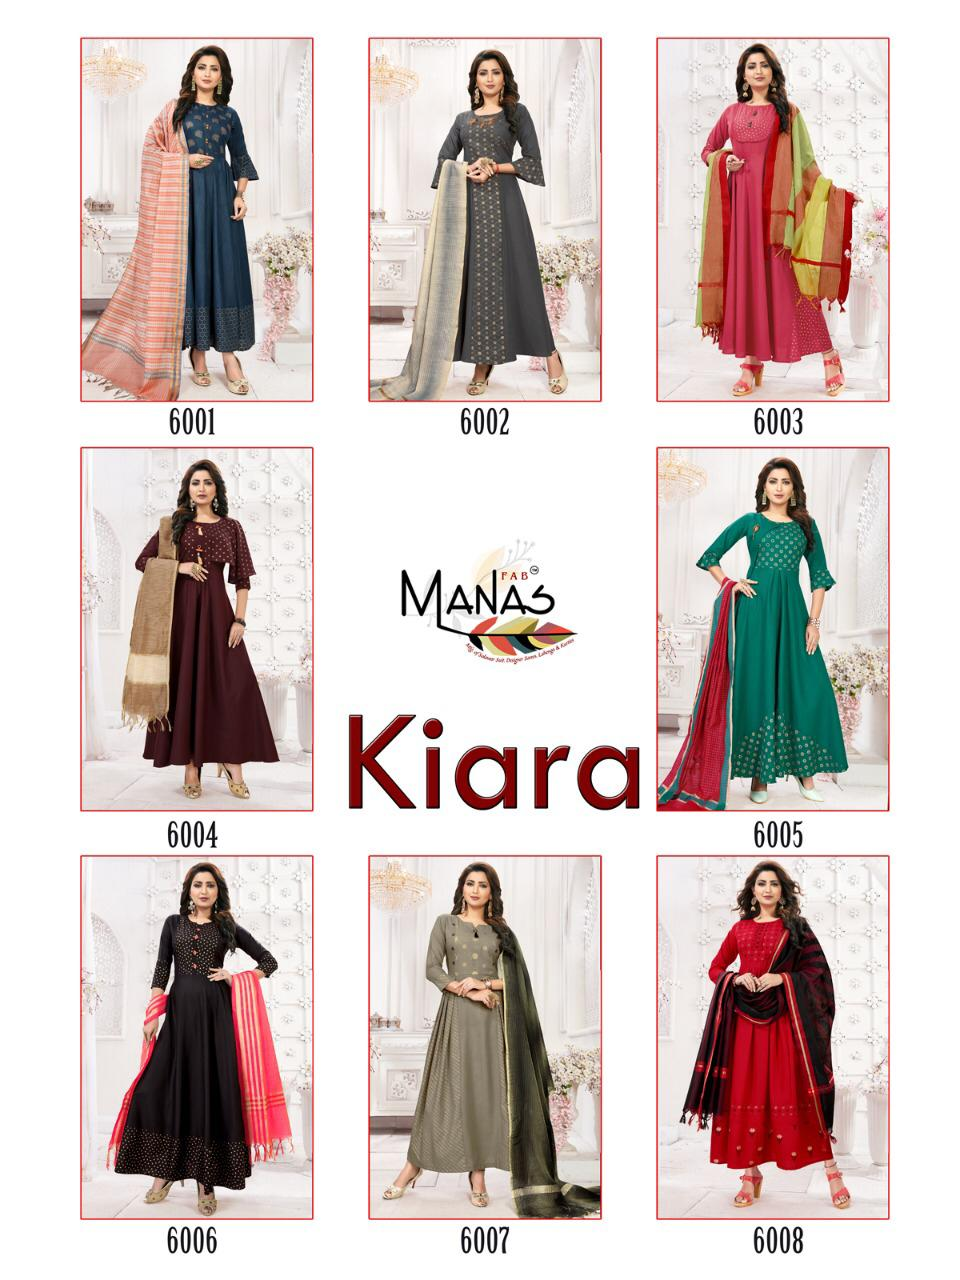 Manas Kiara collection 9